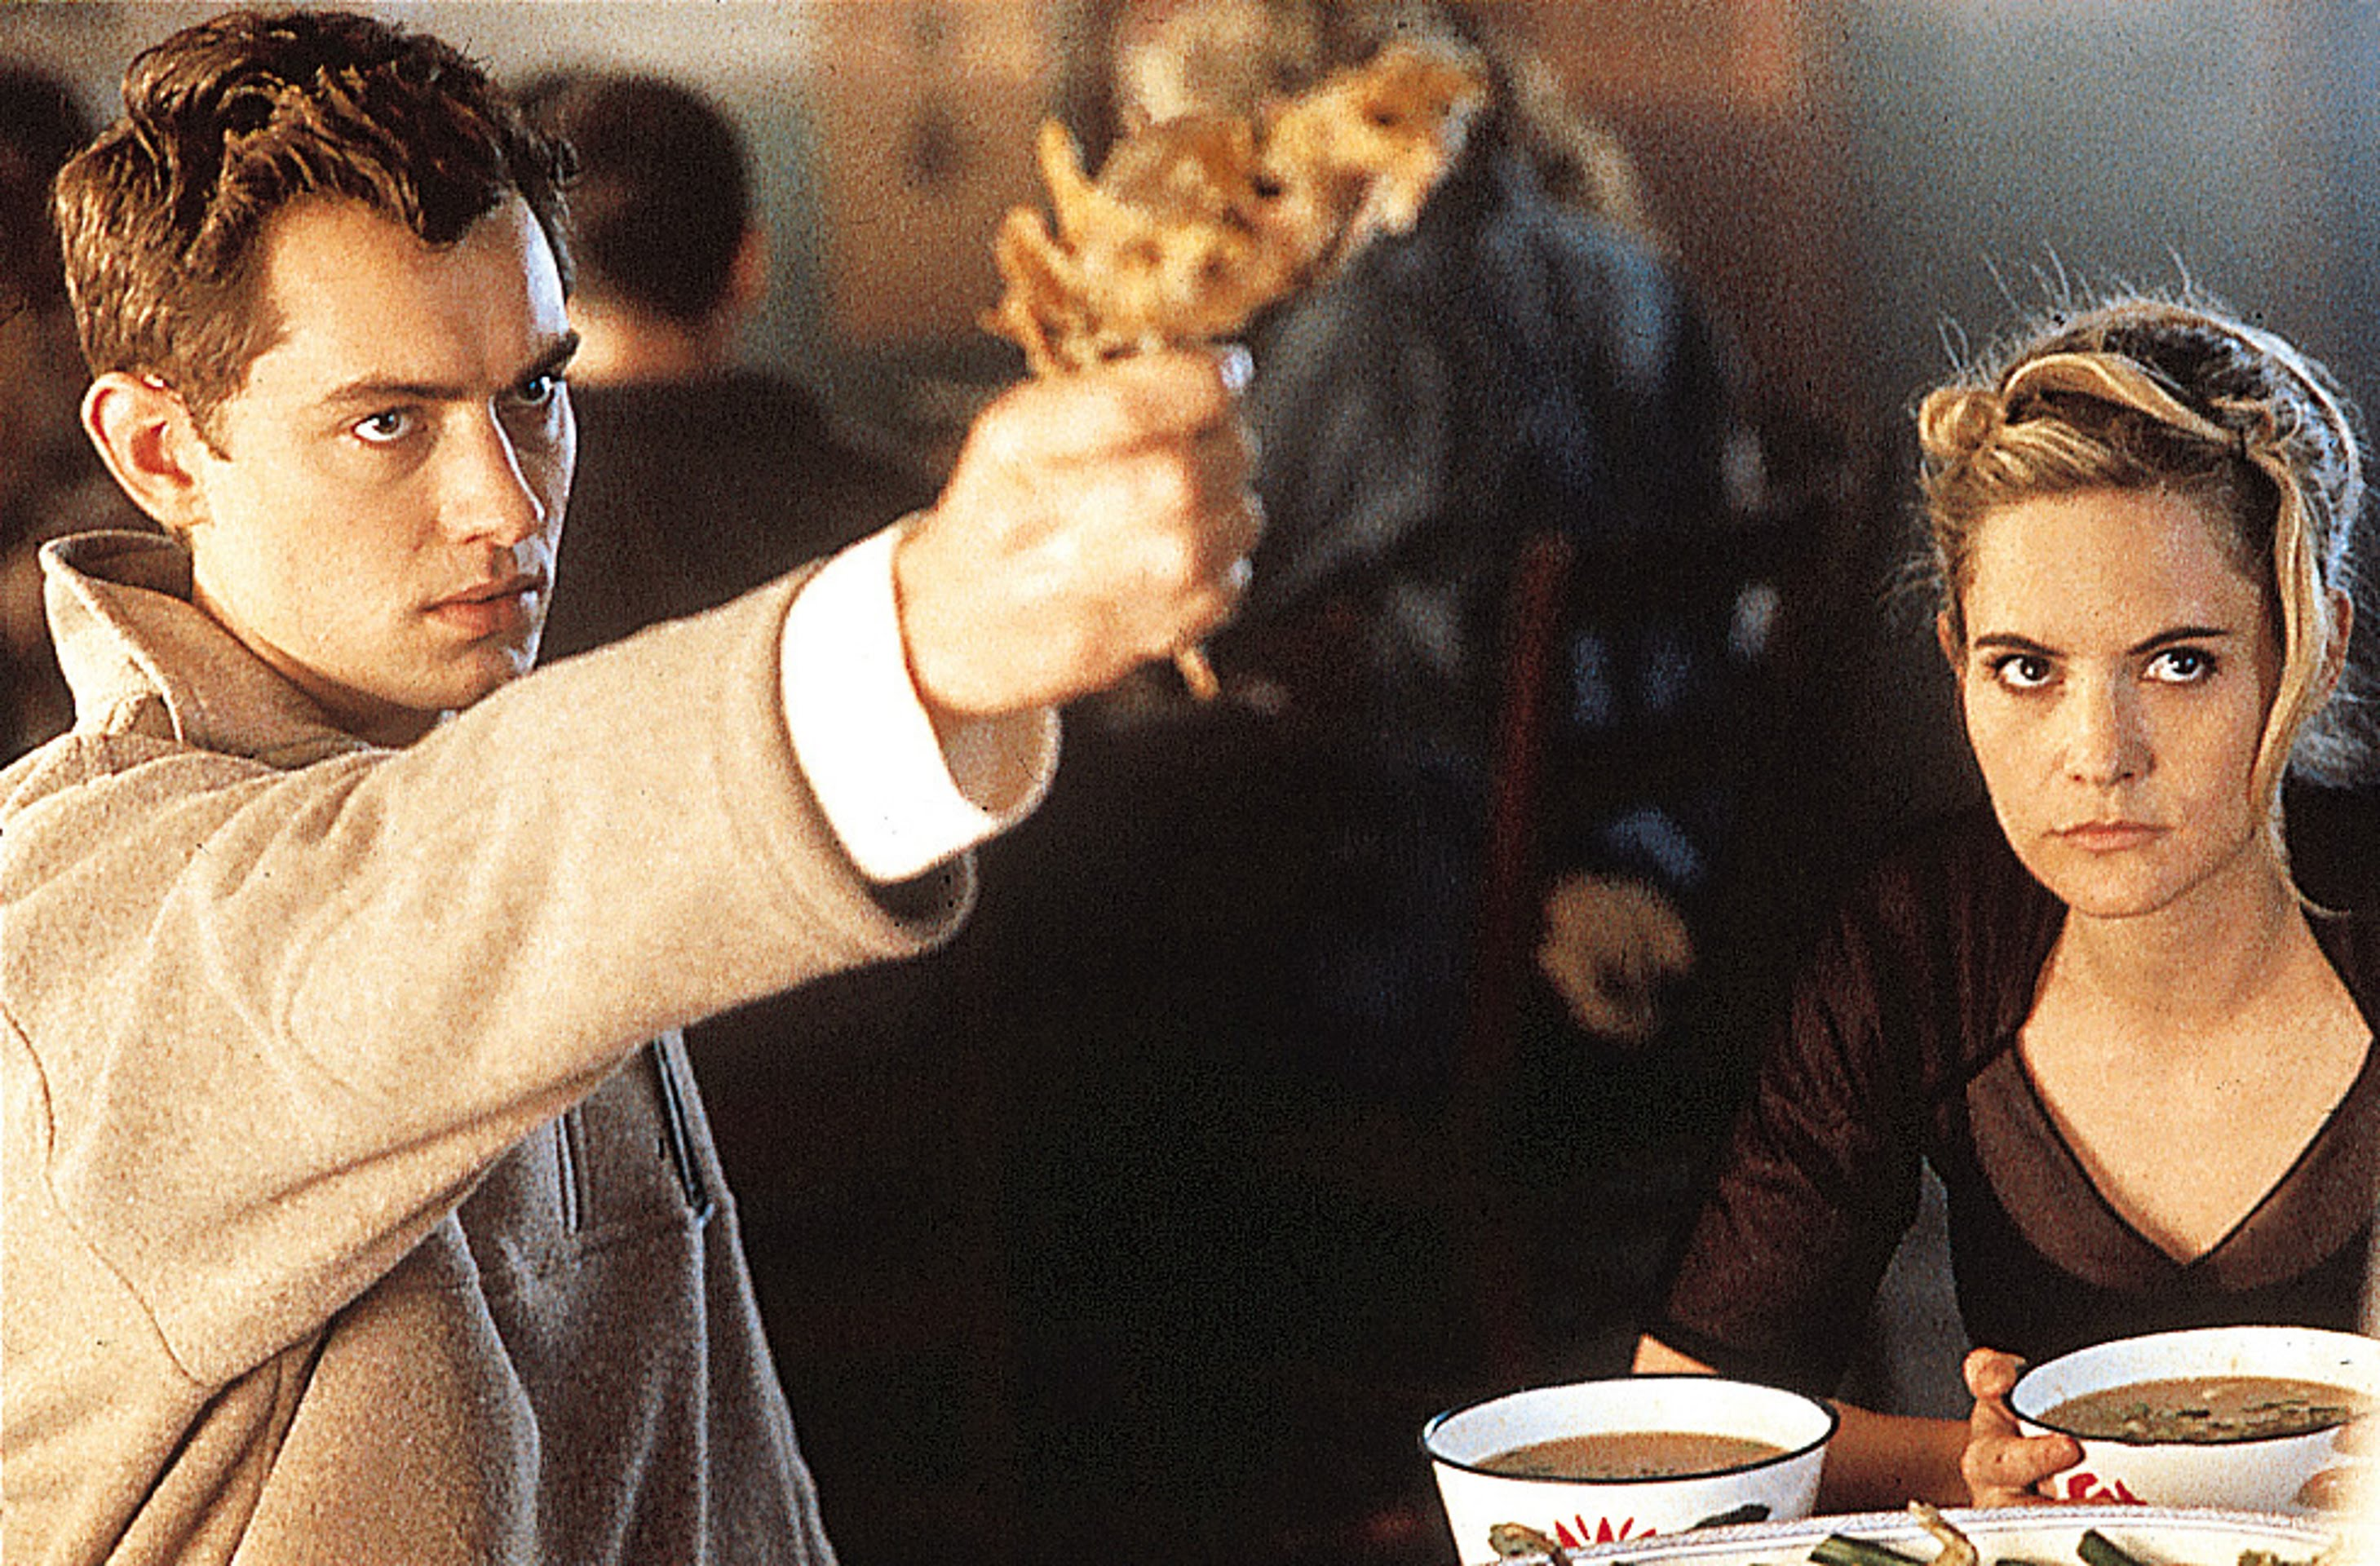 Jude Law and Jennifer Jason Leigh in eXistenZ